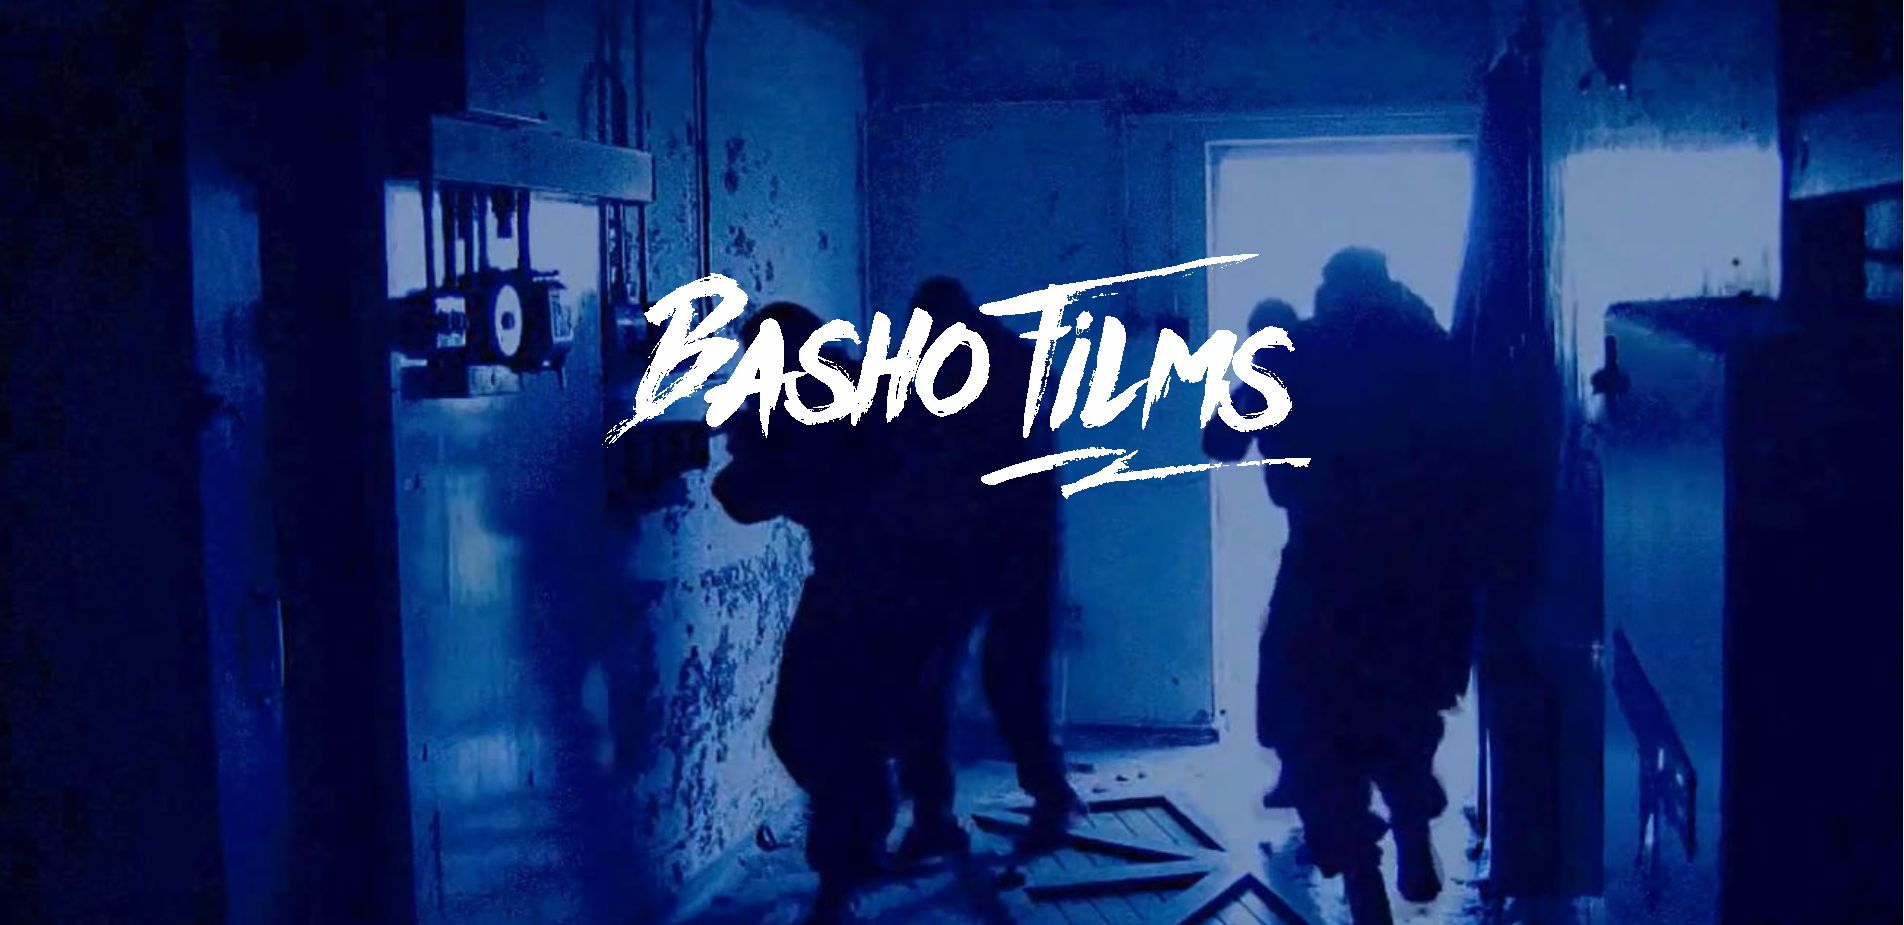 Major overhaul of Basho Films